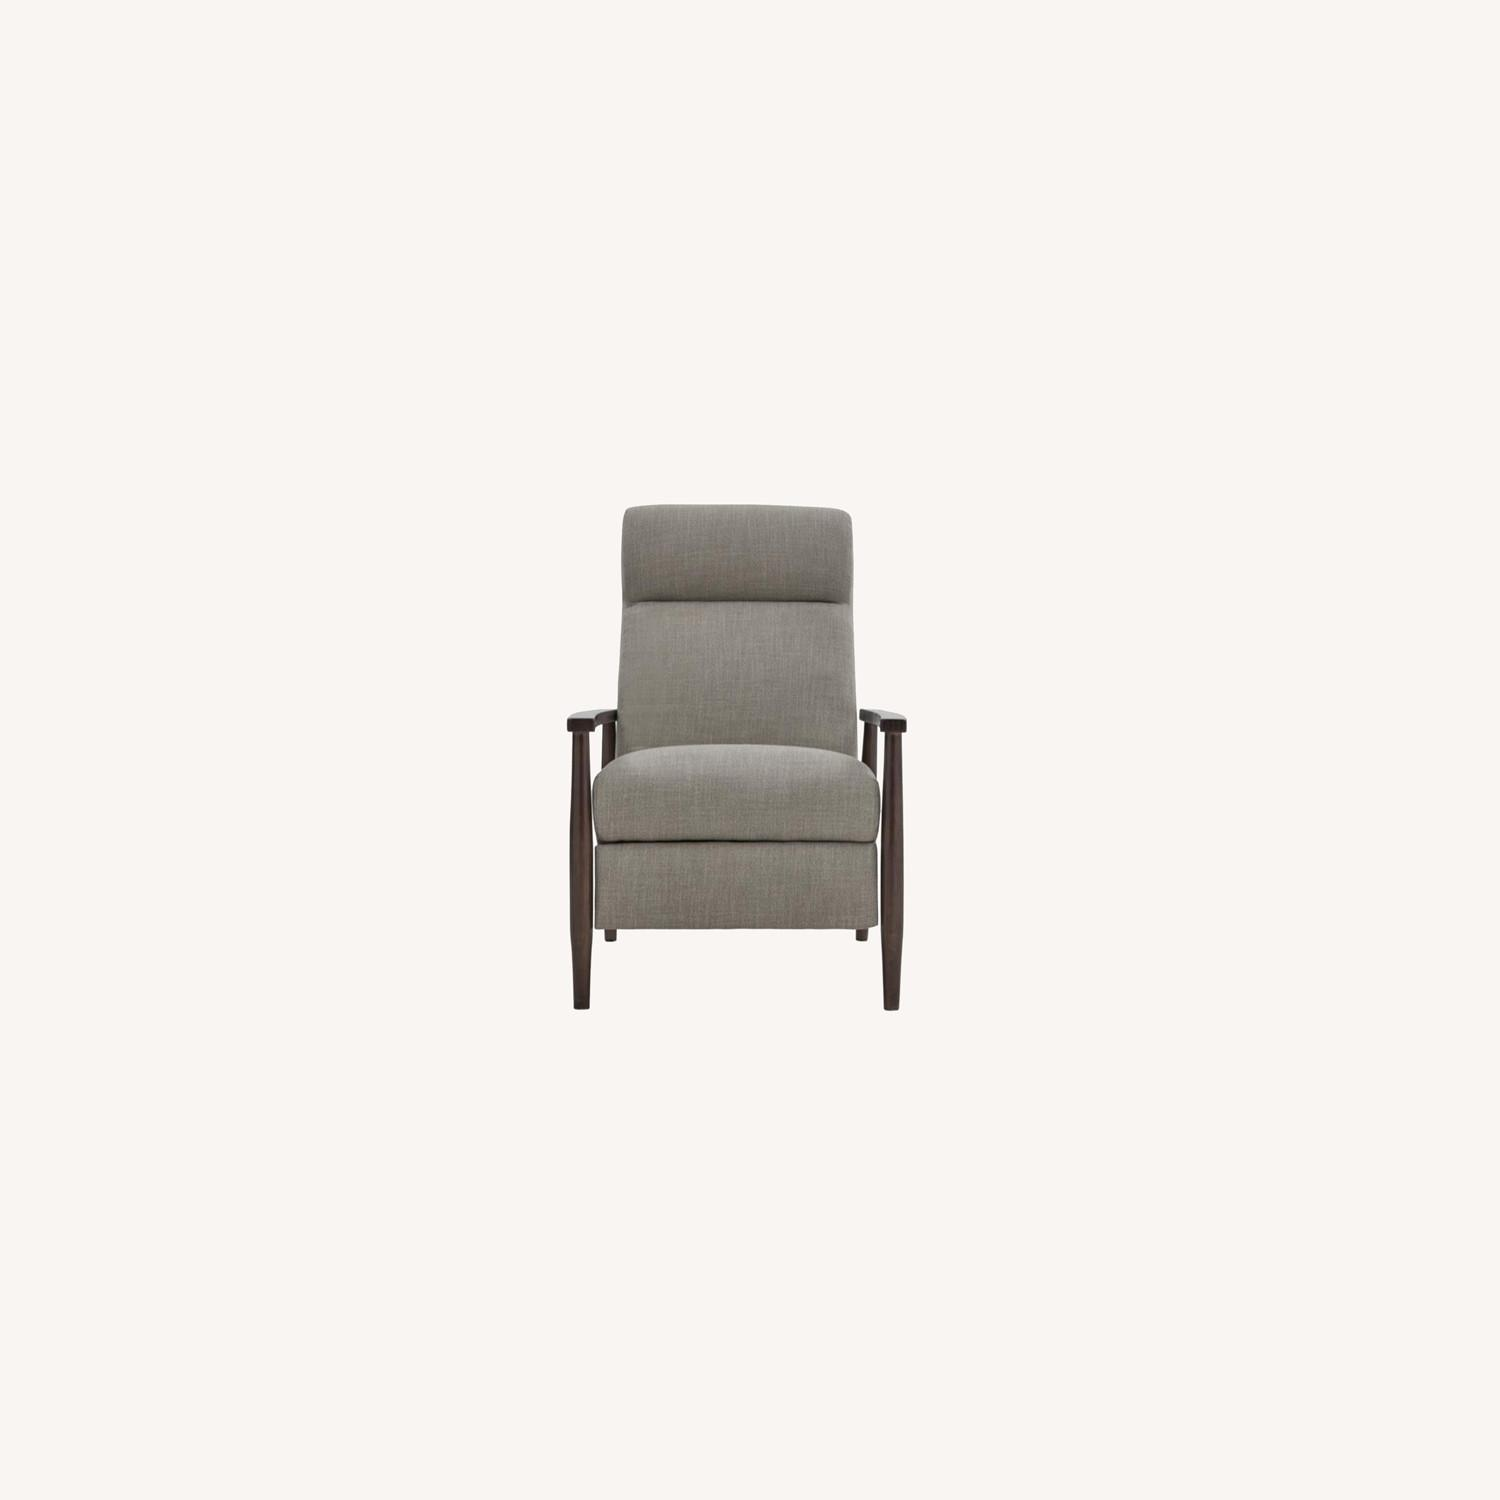 Push-Back Recliner In Cream Performance Fabric - image-7